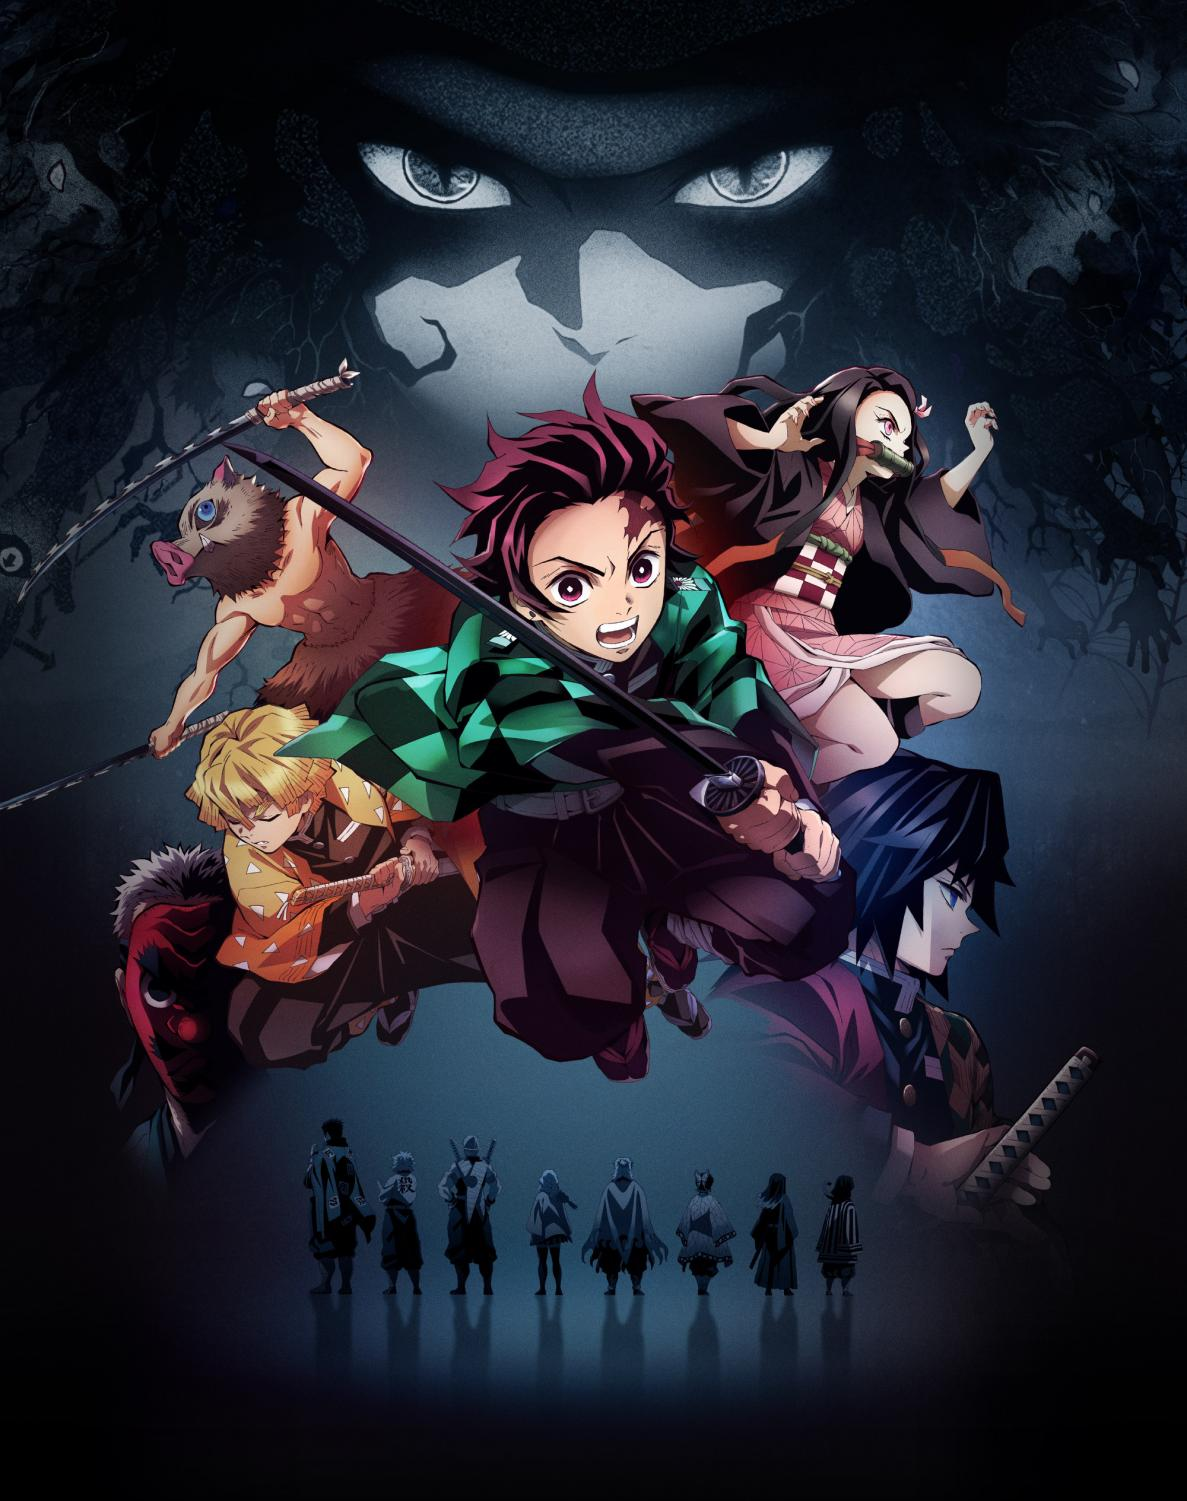 Tanjiro and members of the Demon Slayer Corps in the forefront. While Muzan the first demon is in the background. Courtesy of Crunchyroll.